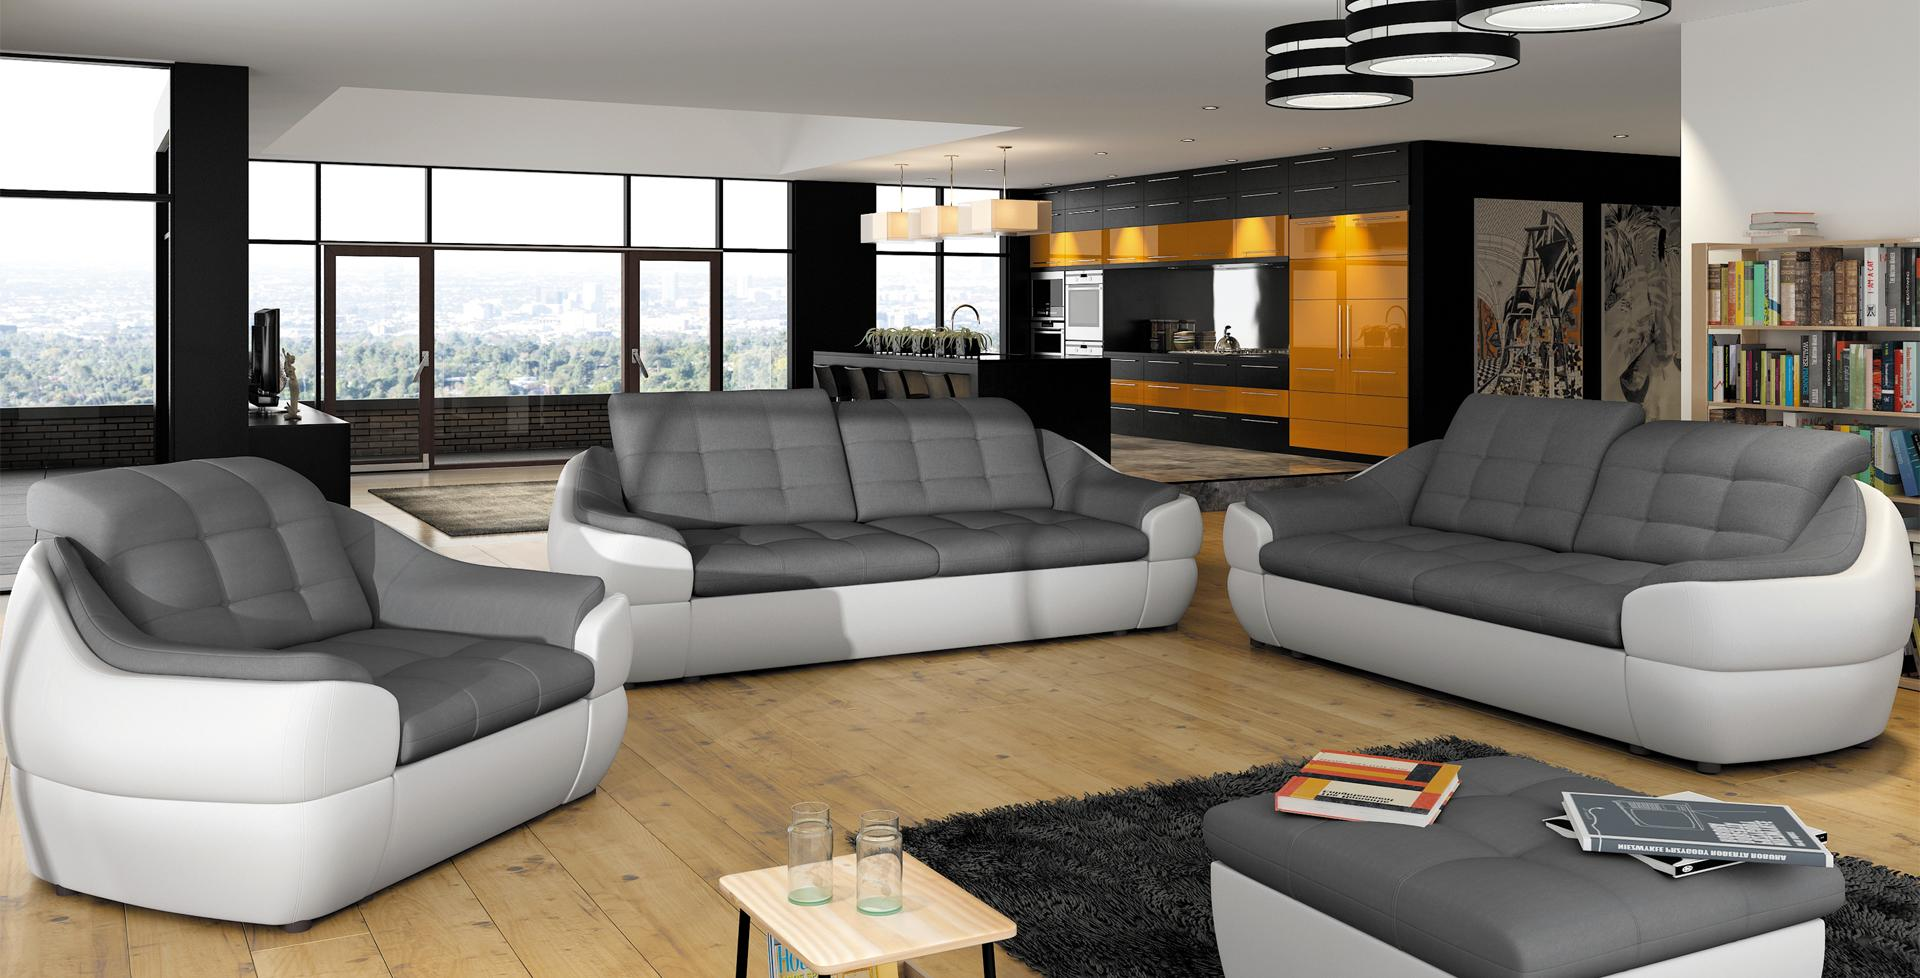 sofagarnitur sofa couch 3 2 1 garnitur mit relax funktion. Black Bedroom Furniture Sets. Home Design Ideas